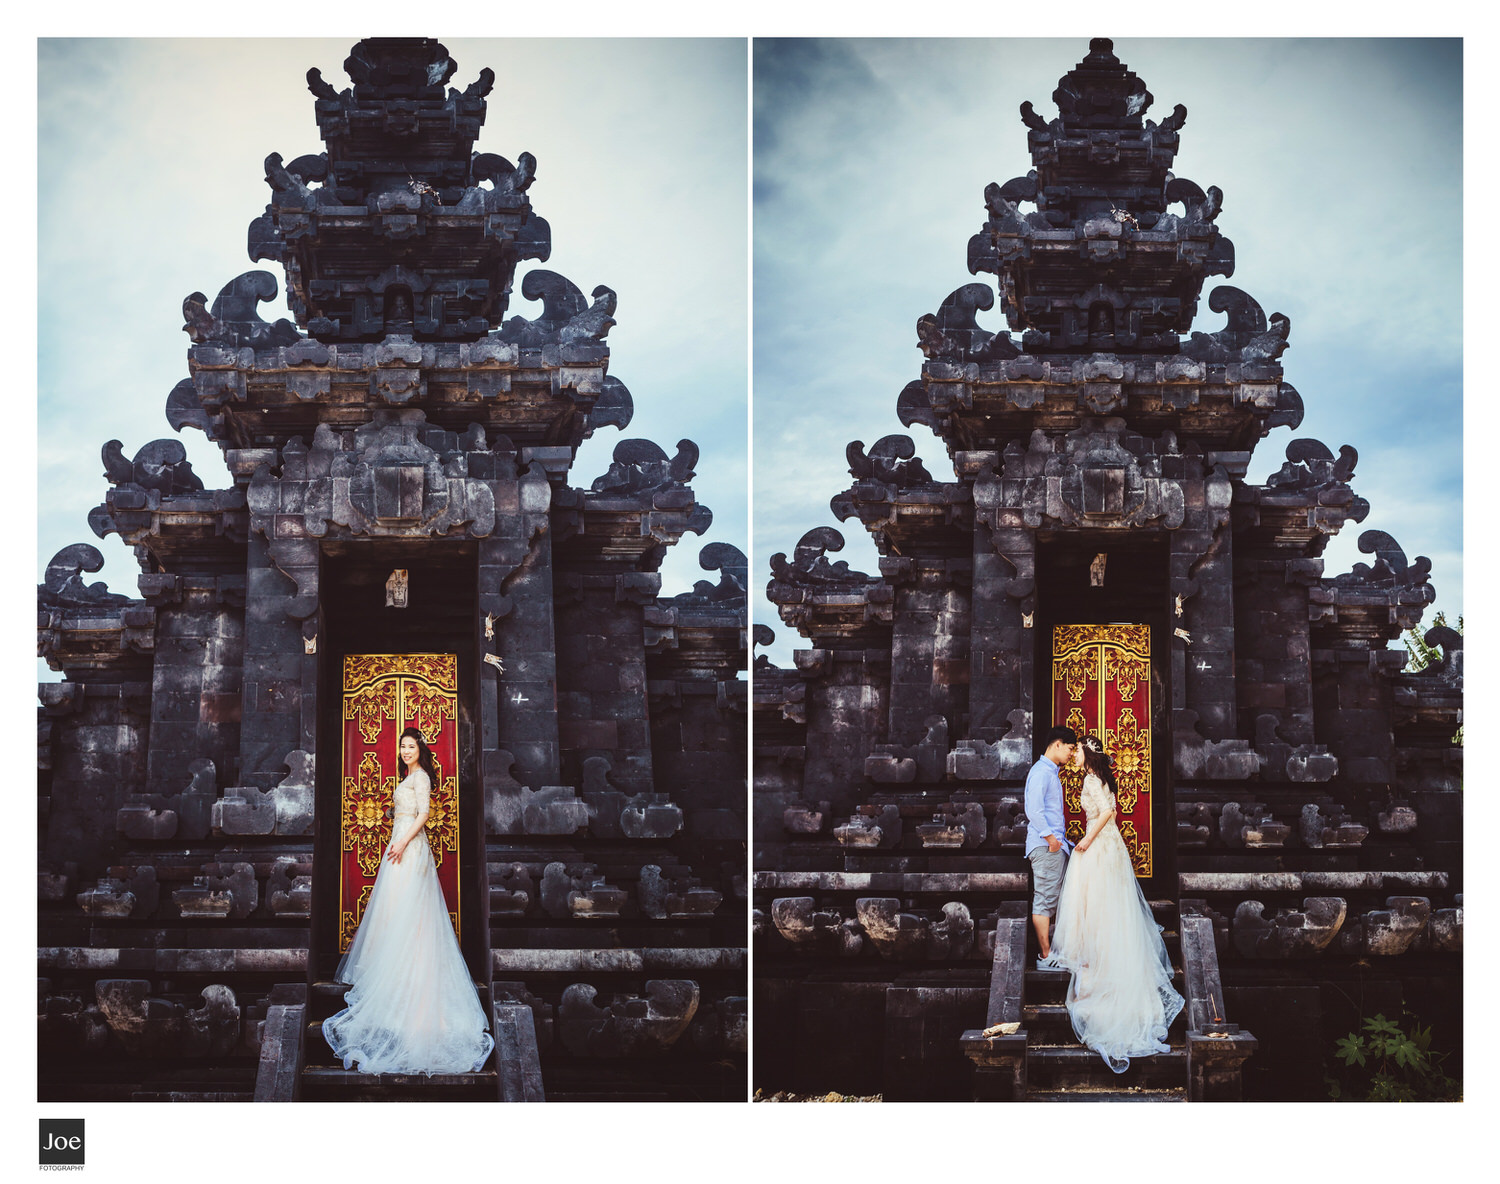 joe-fotography-16-bali-pre-wedding-amelie.jpg